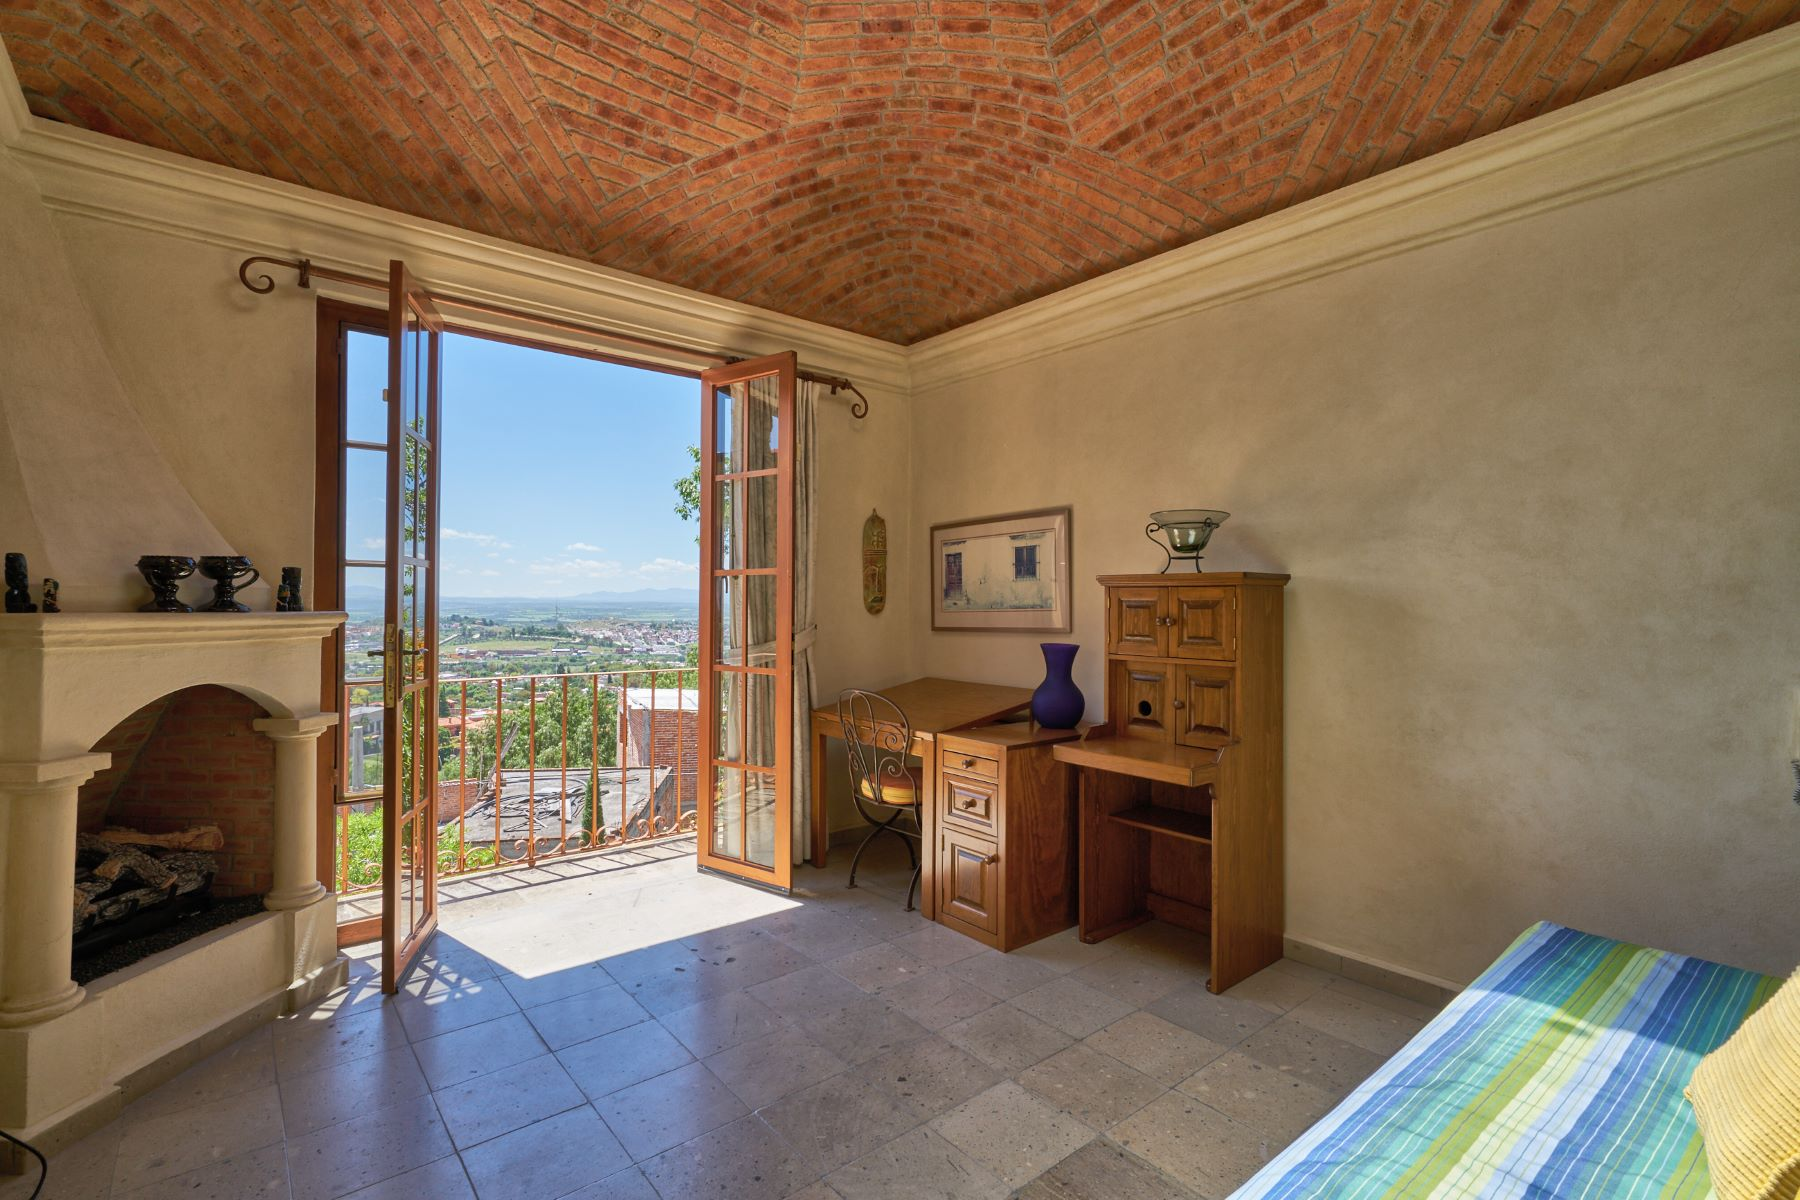 Additional photo for property listing at VILLA CELESTE Ojo De Agua, San Miguel De Allende, Guanajuato Mexico